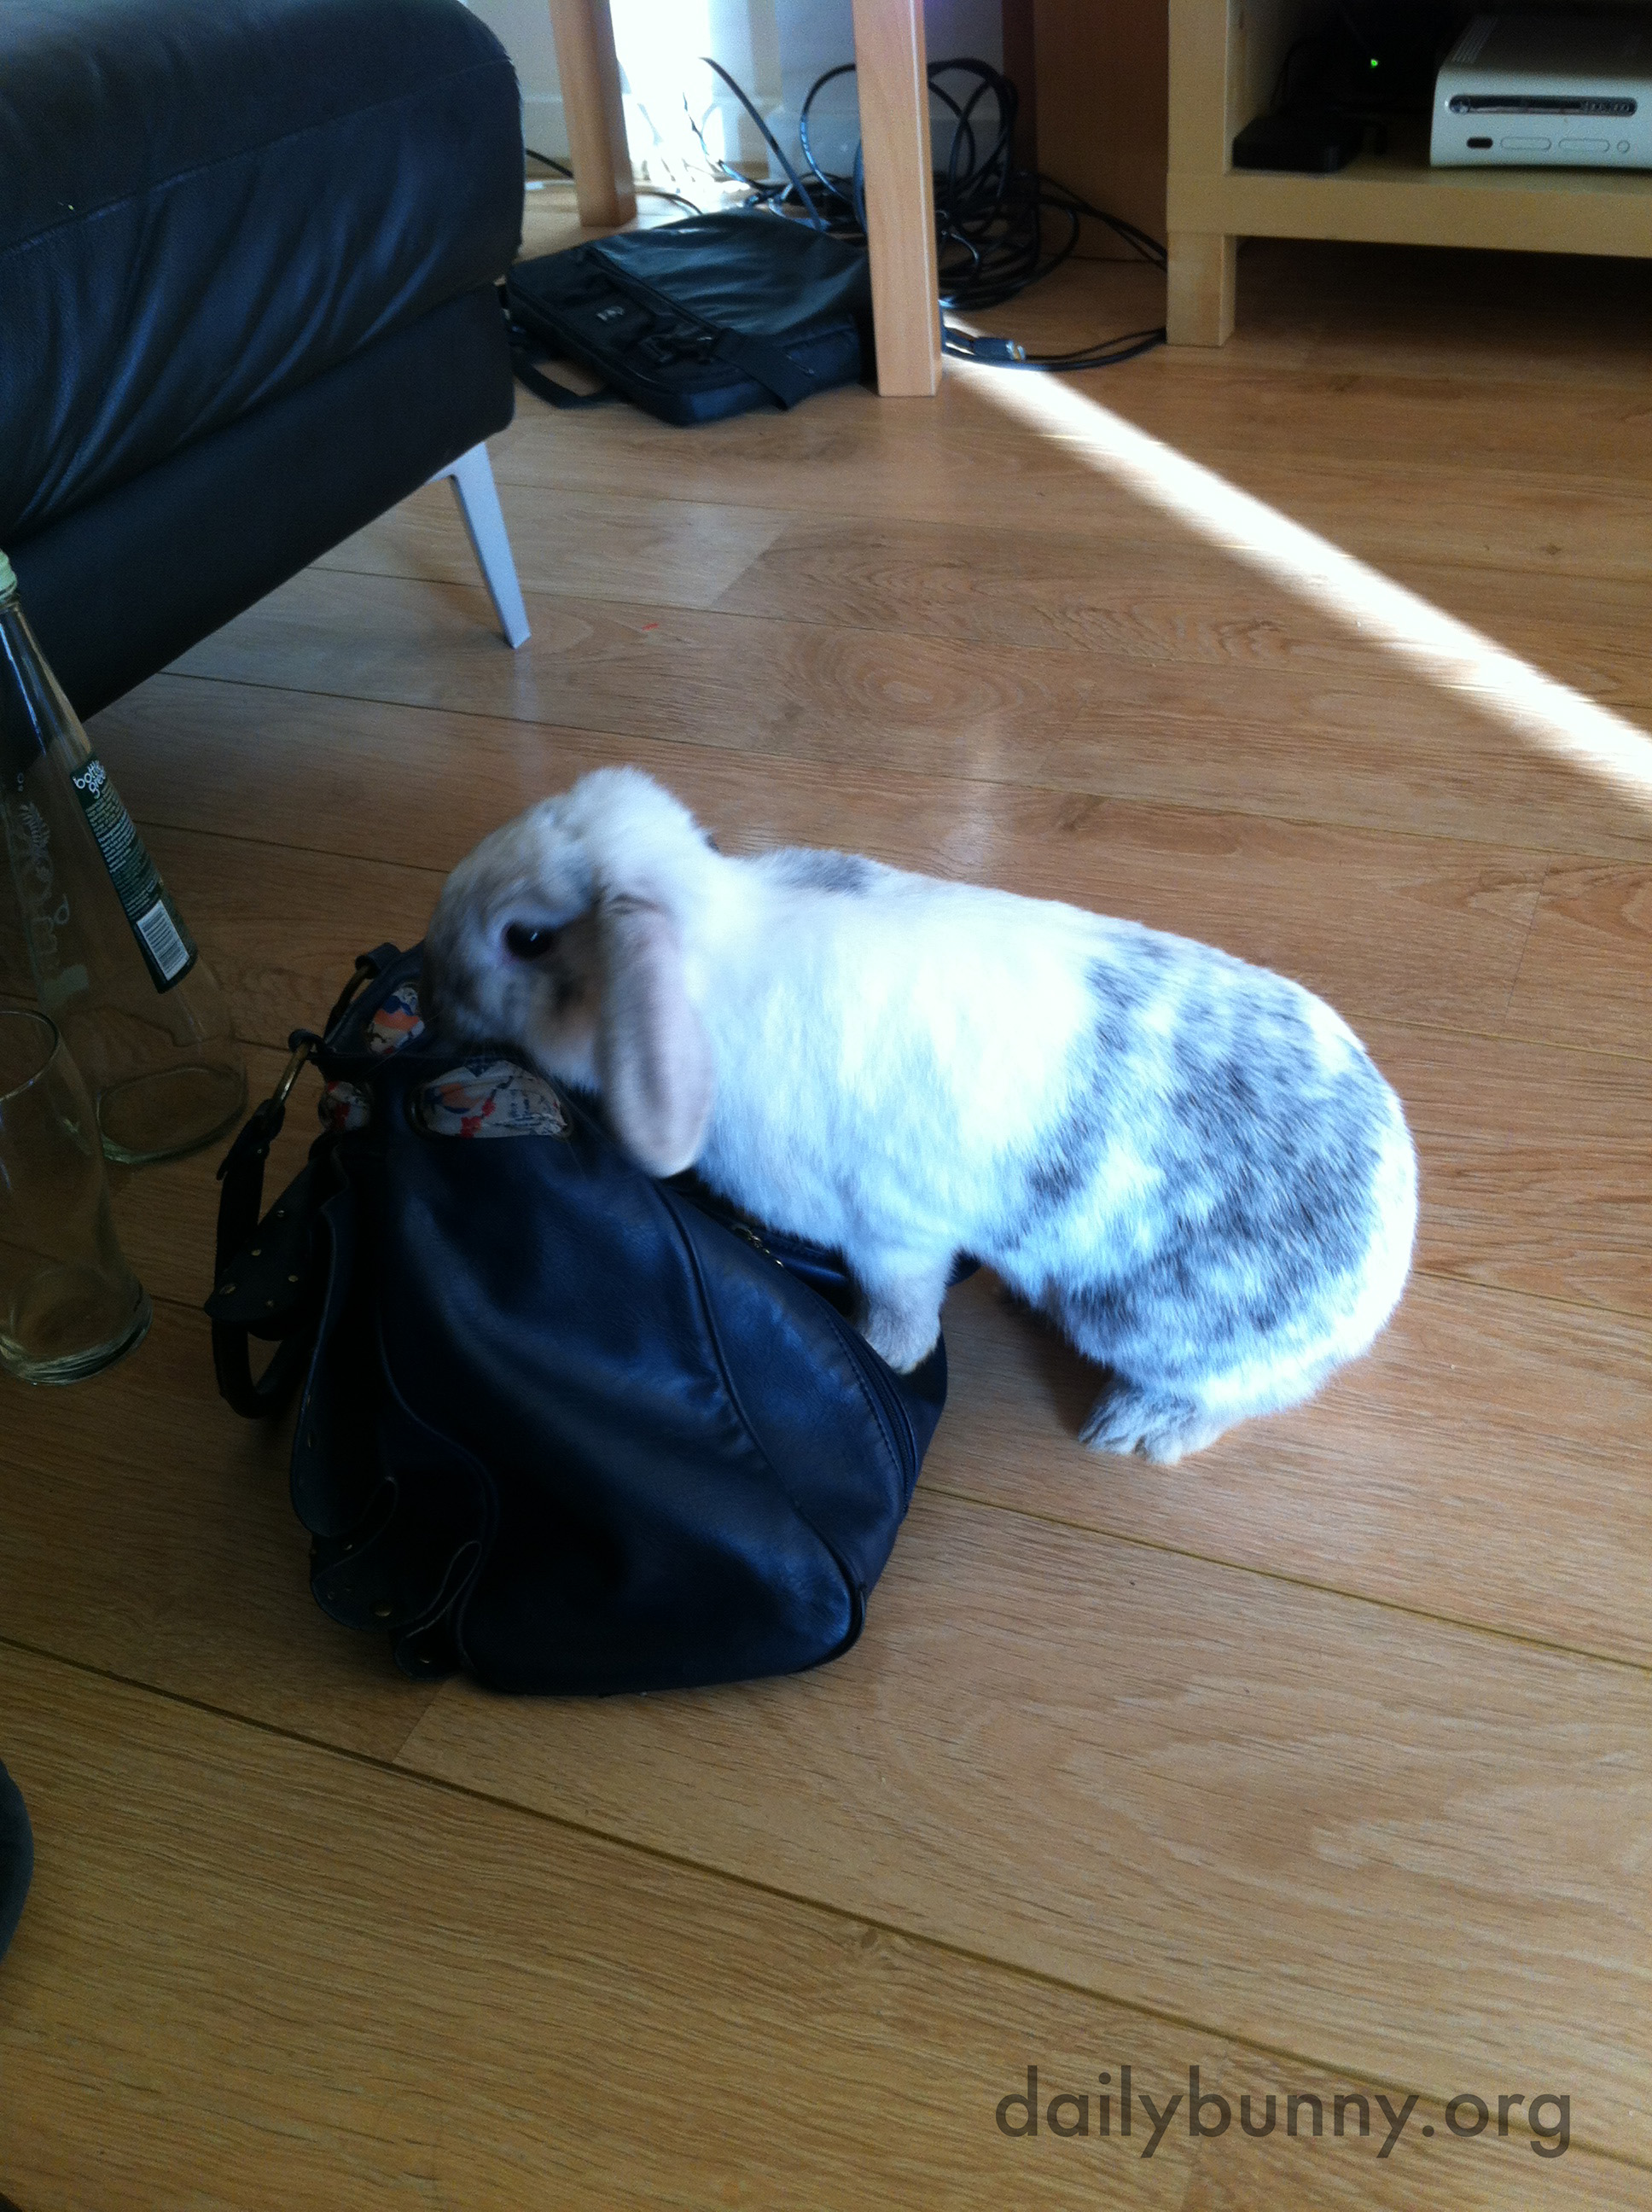 Bunny Plans to Stow Away in His Human's Bag for a Trip to the Grocery Store